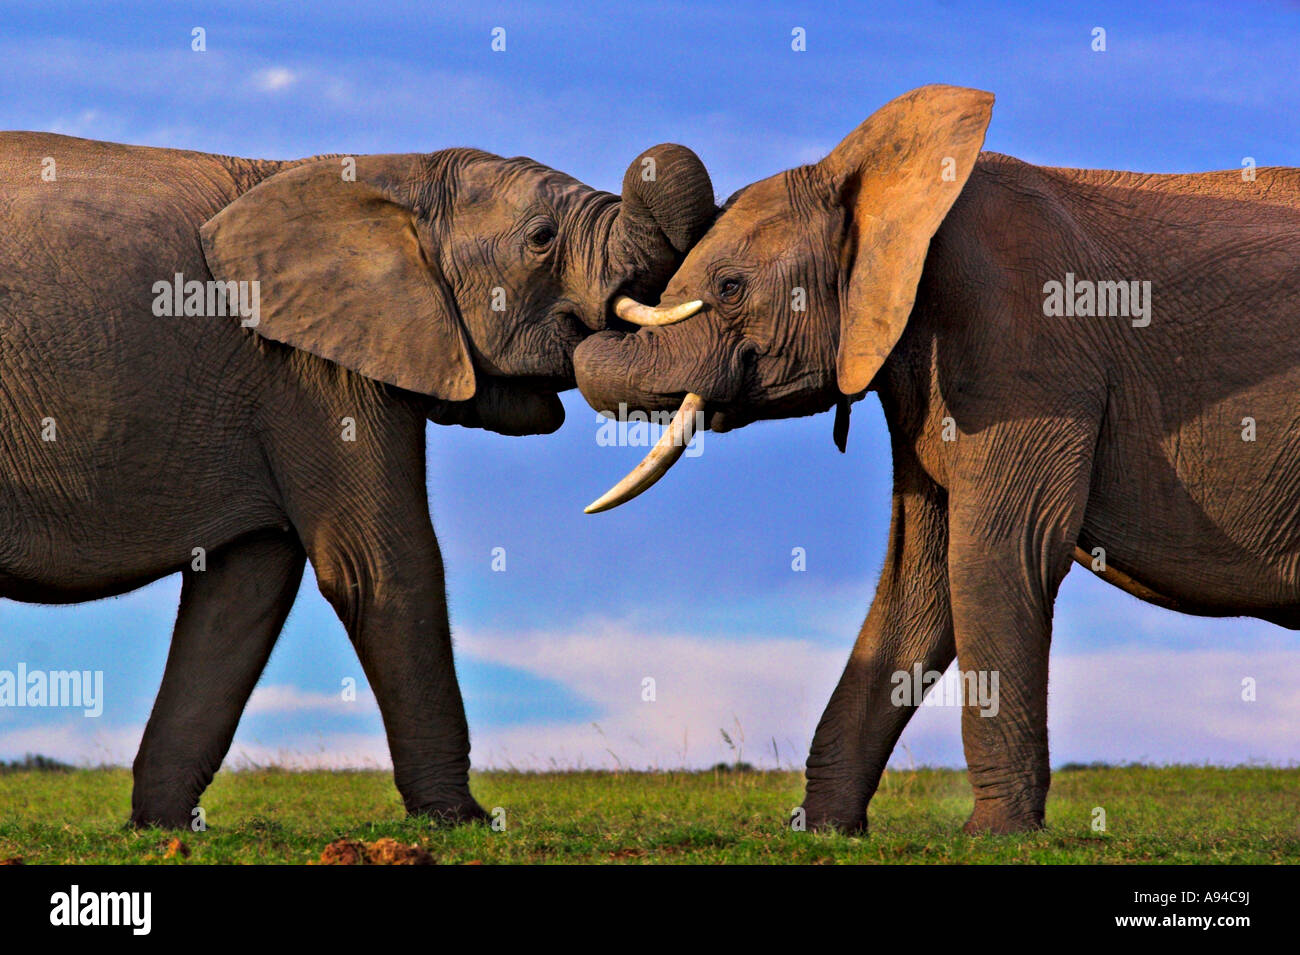 elephant pair stock photos elephant pair stock images alamy. Black Bedroom Furniture Sets. Home Design Ideas